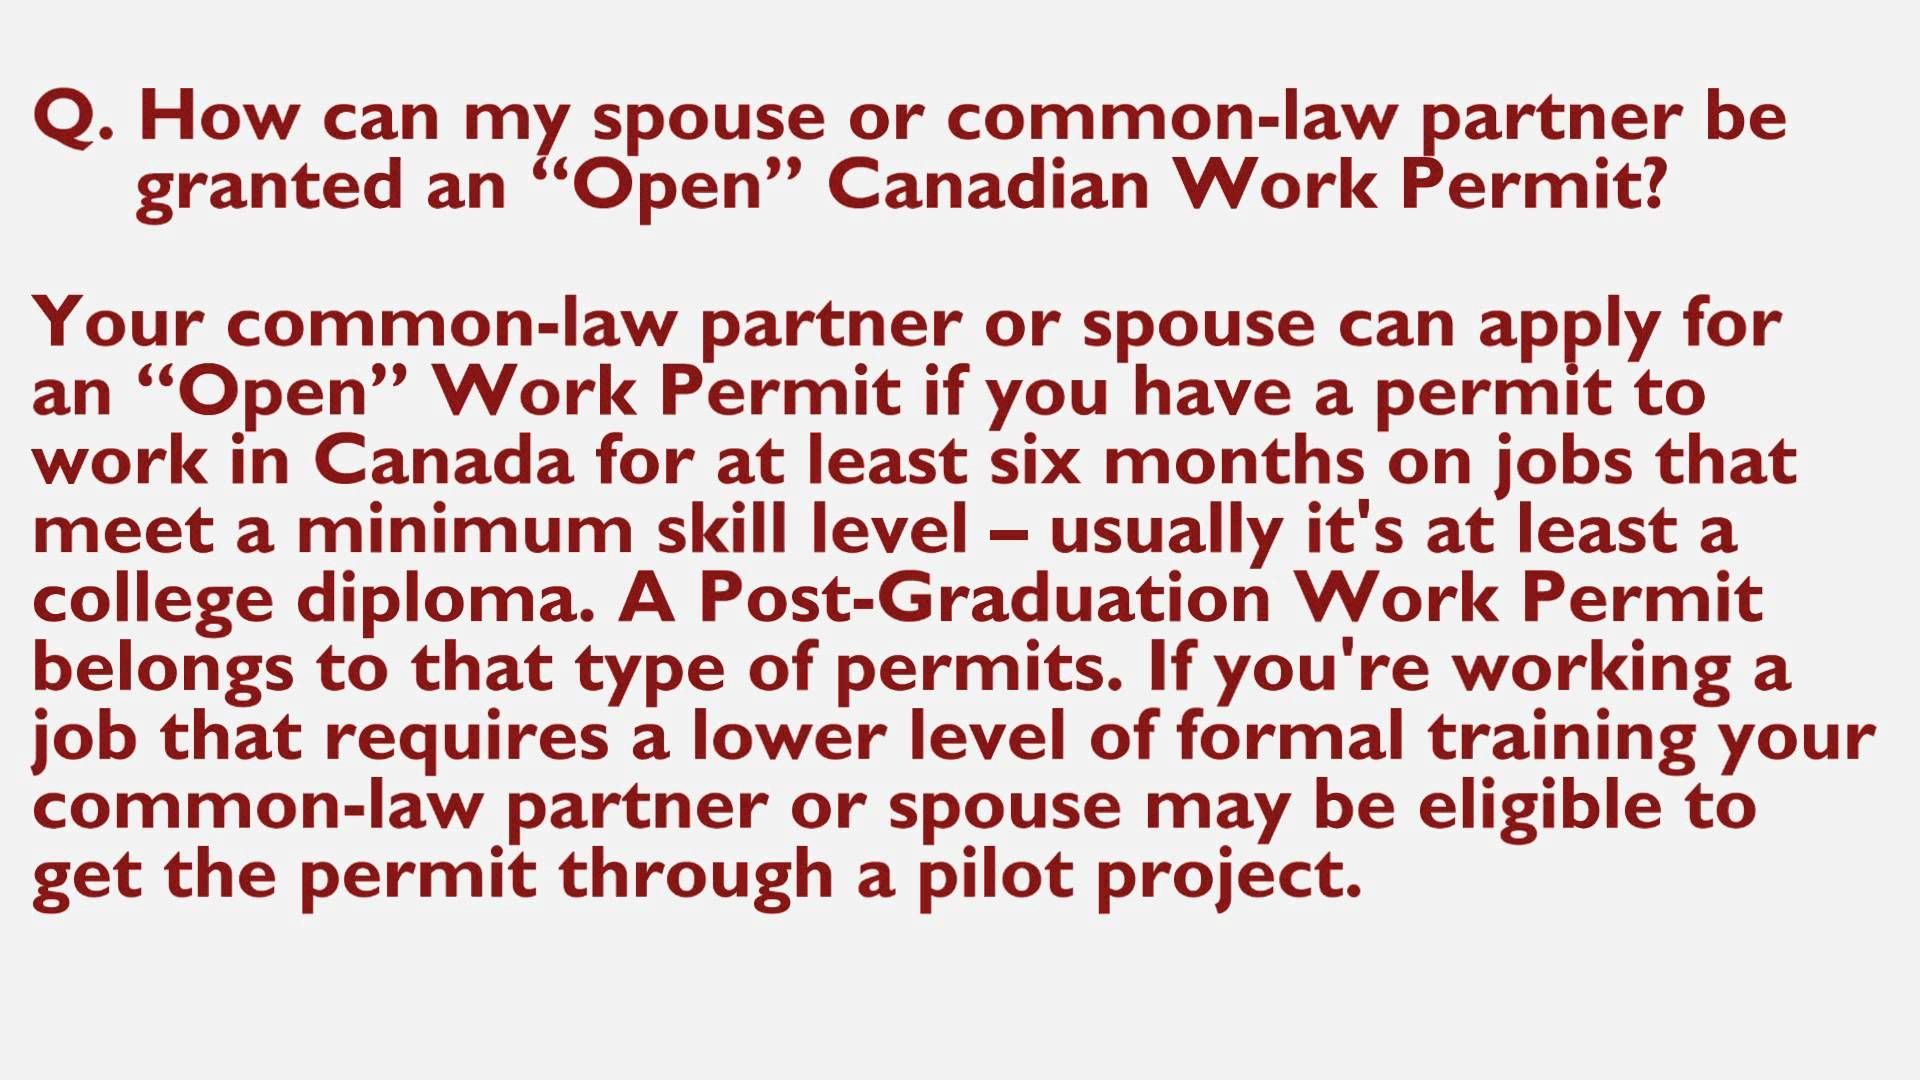 Canada extends open work permit for Spouses